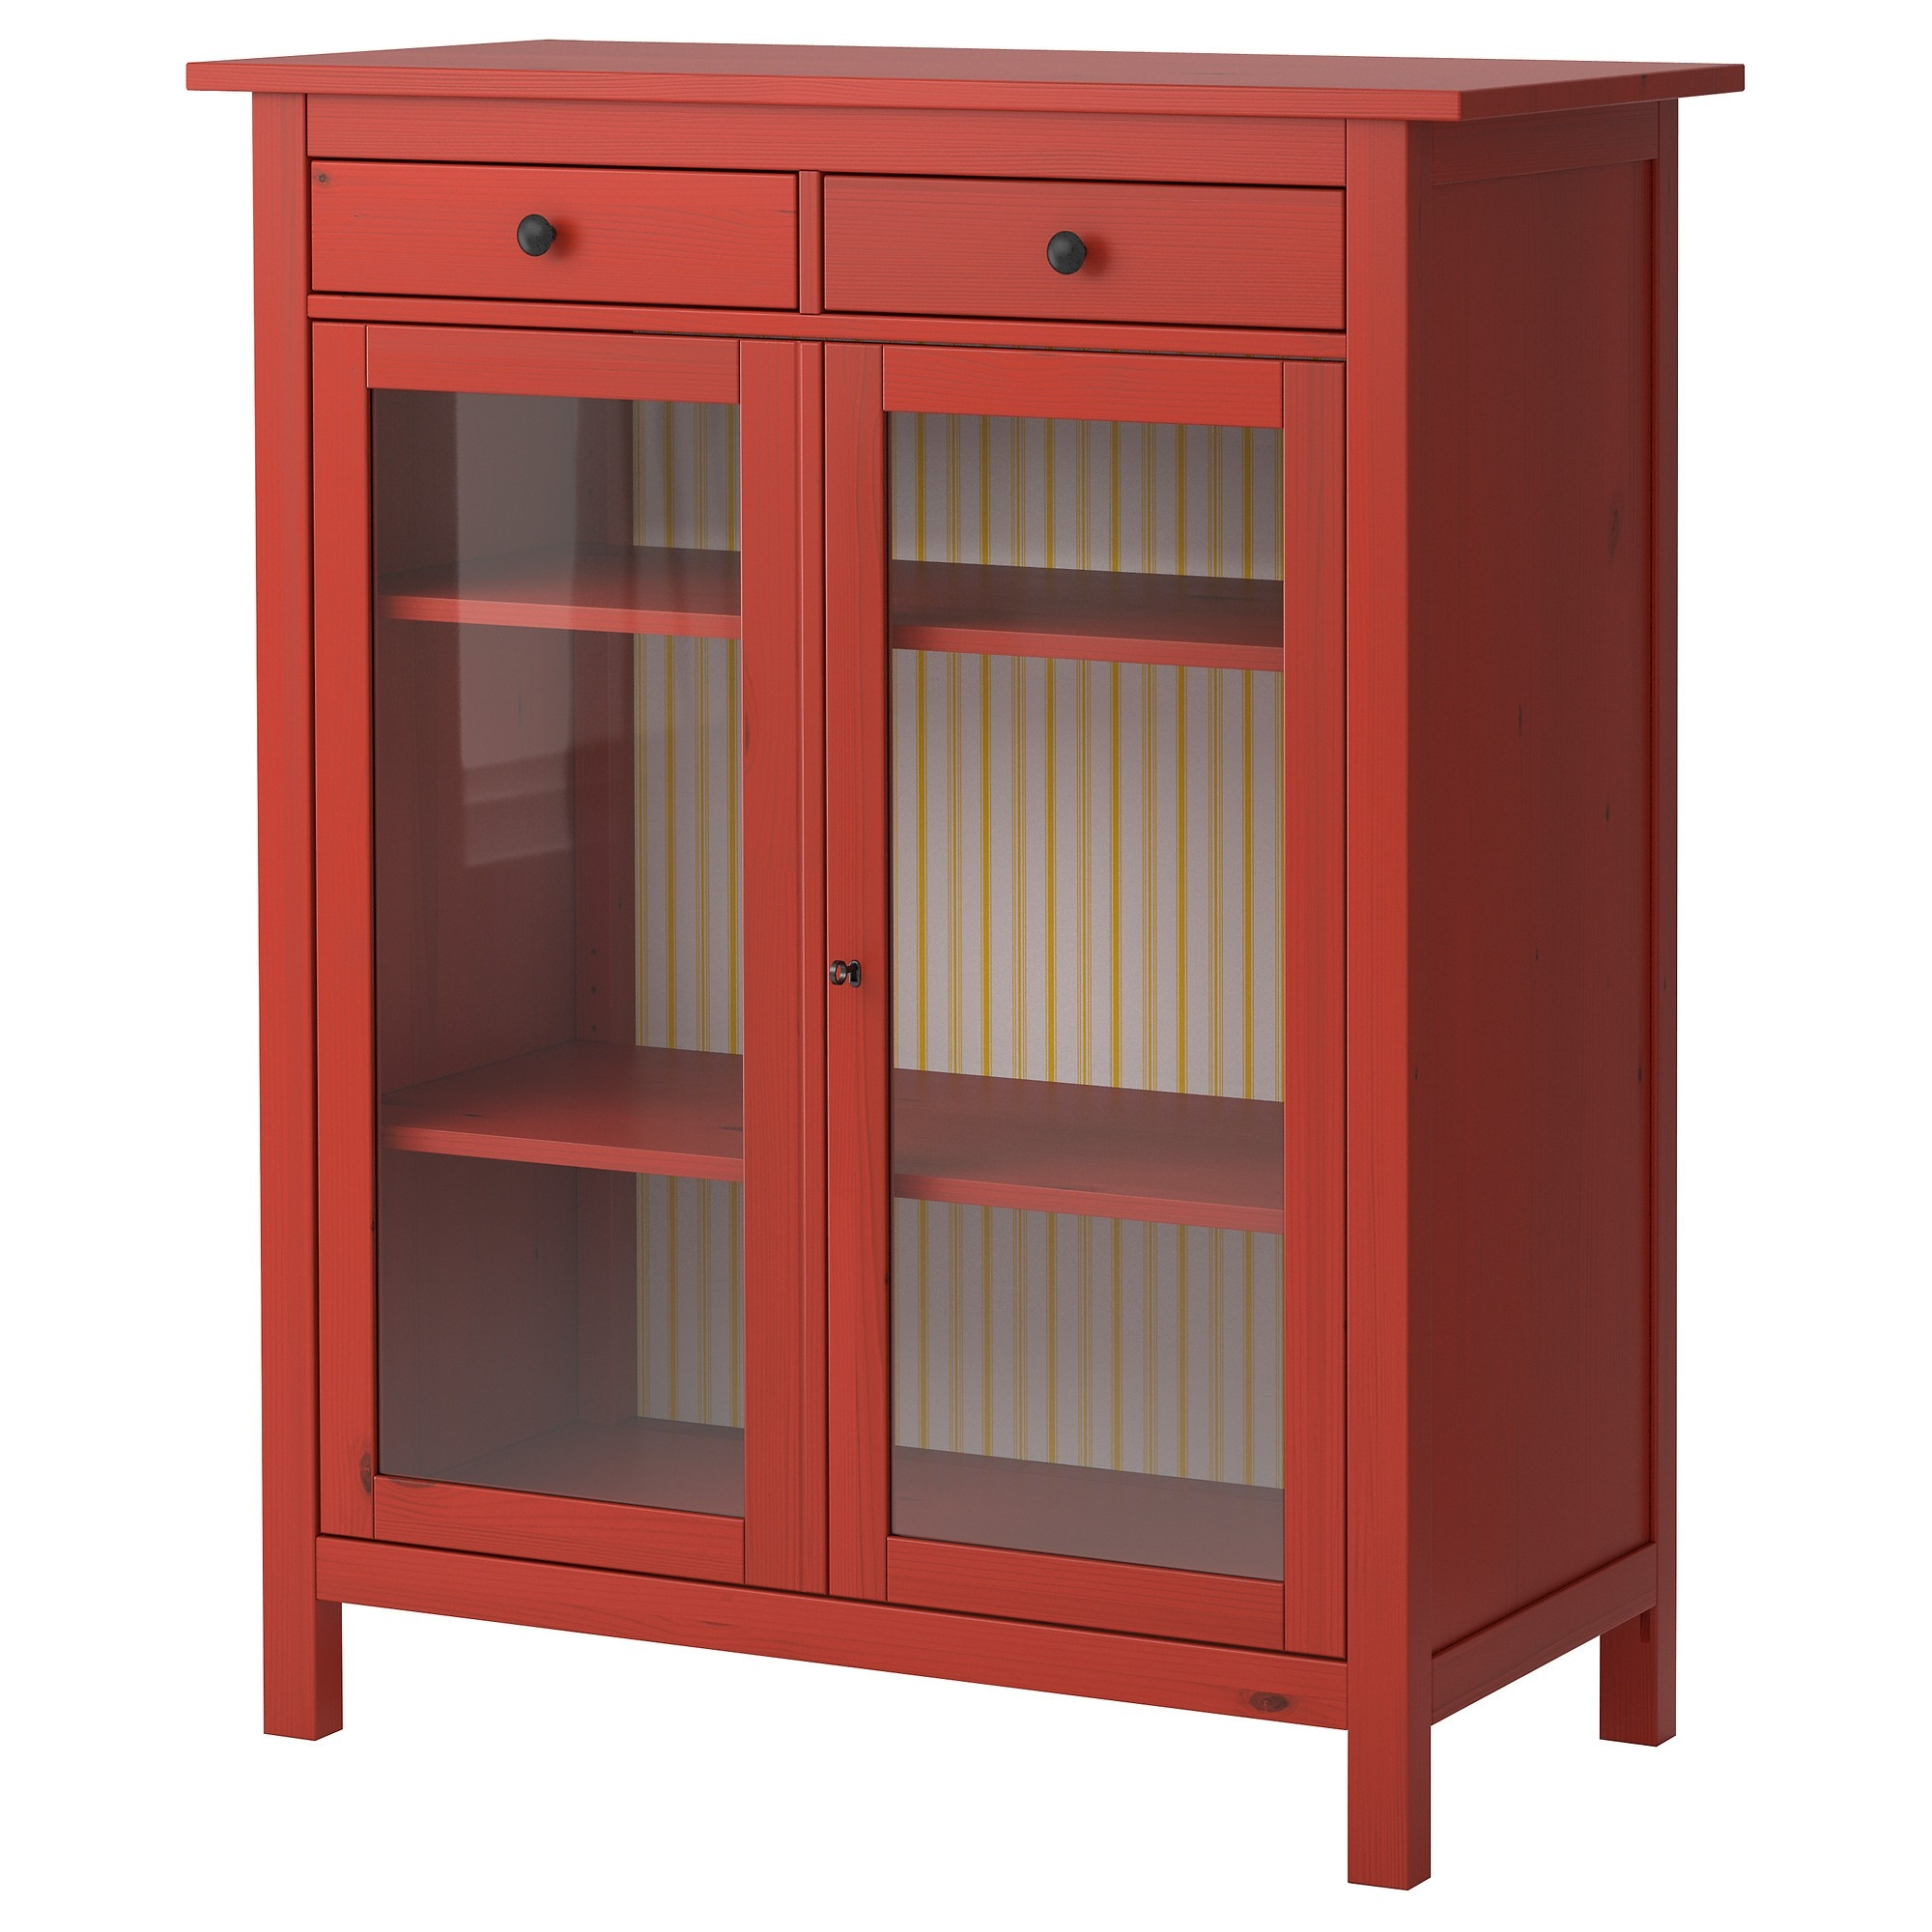 Red Storage Cabinet With Glass Doors